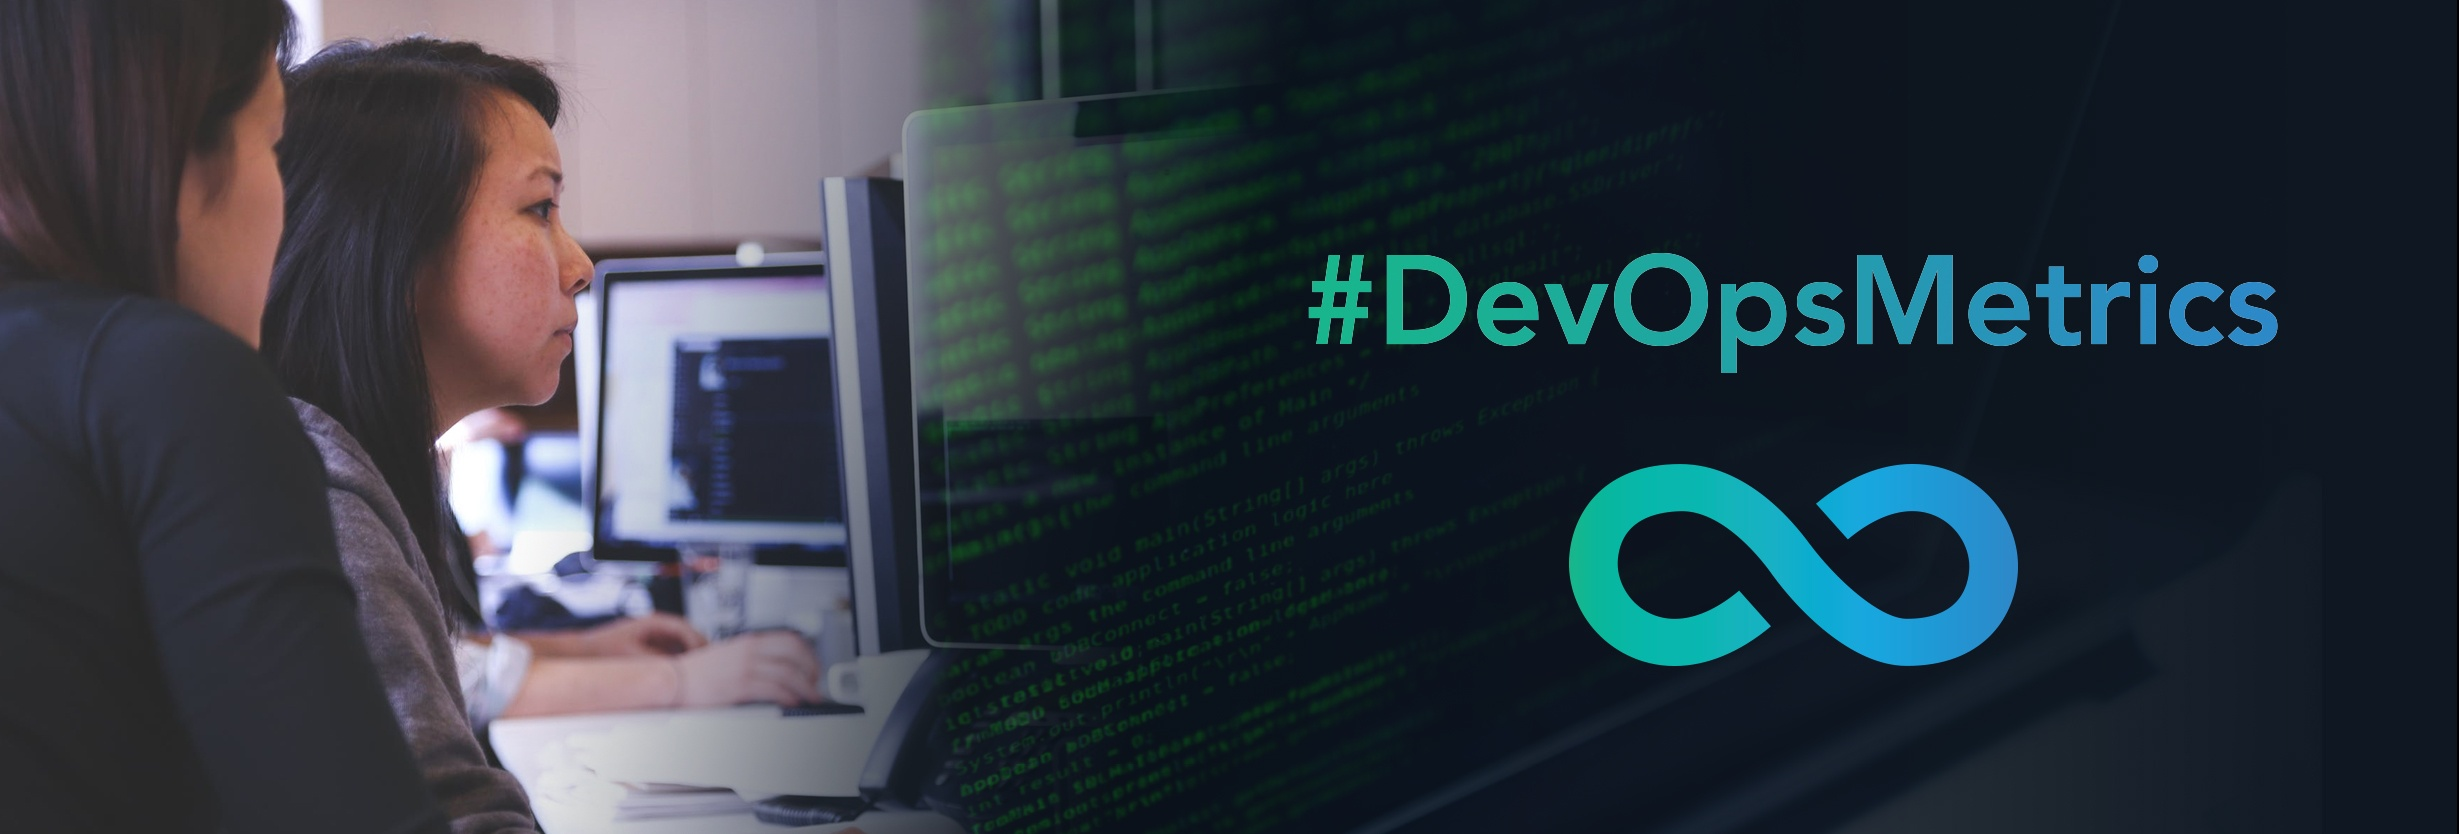 [Infographic] Doing DevOps? Do You Have The DevOps Metrics That Matter Most?